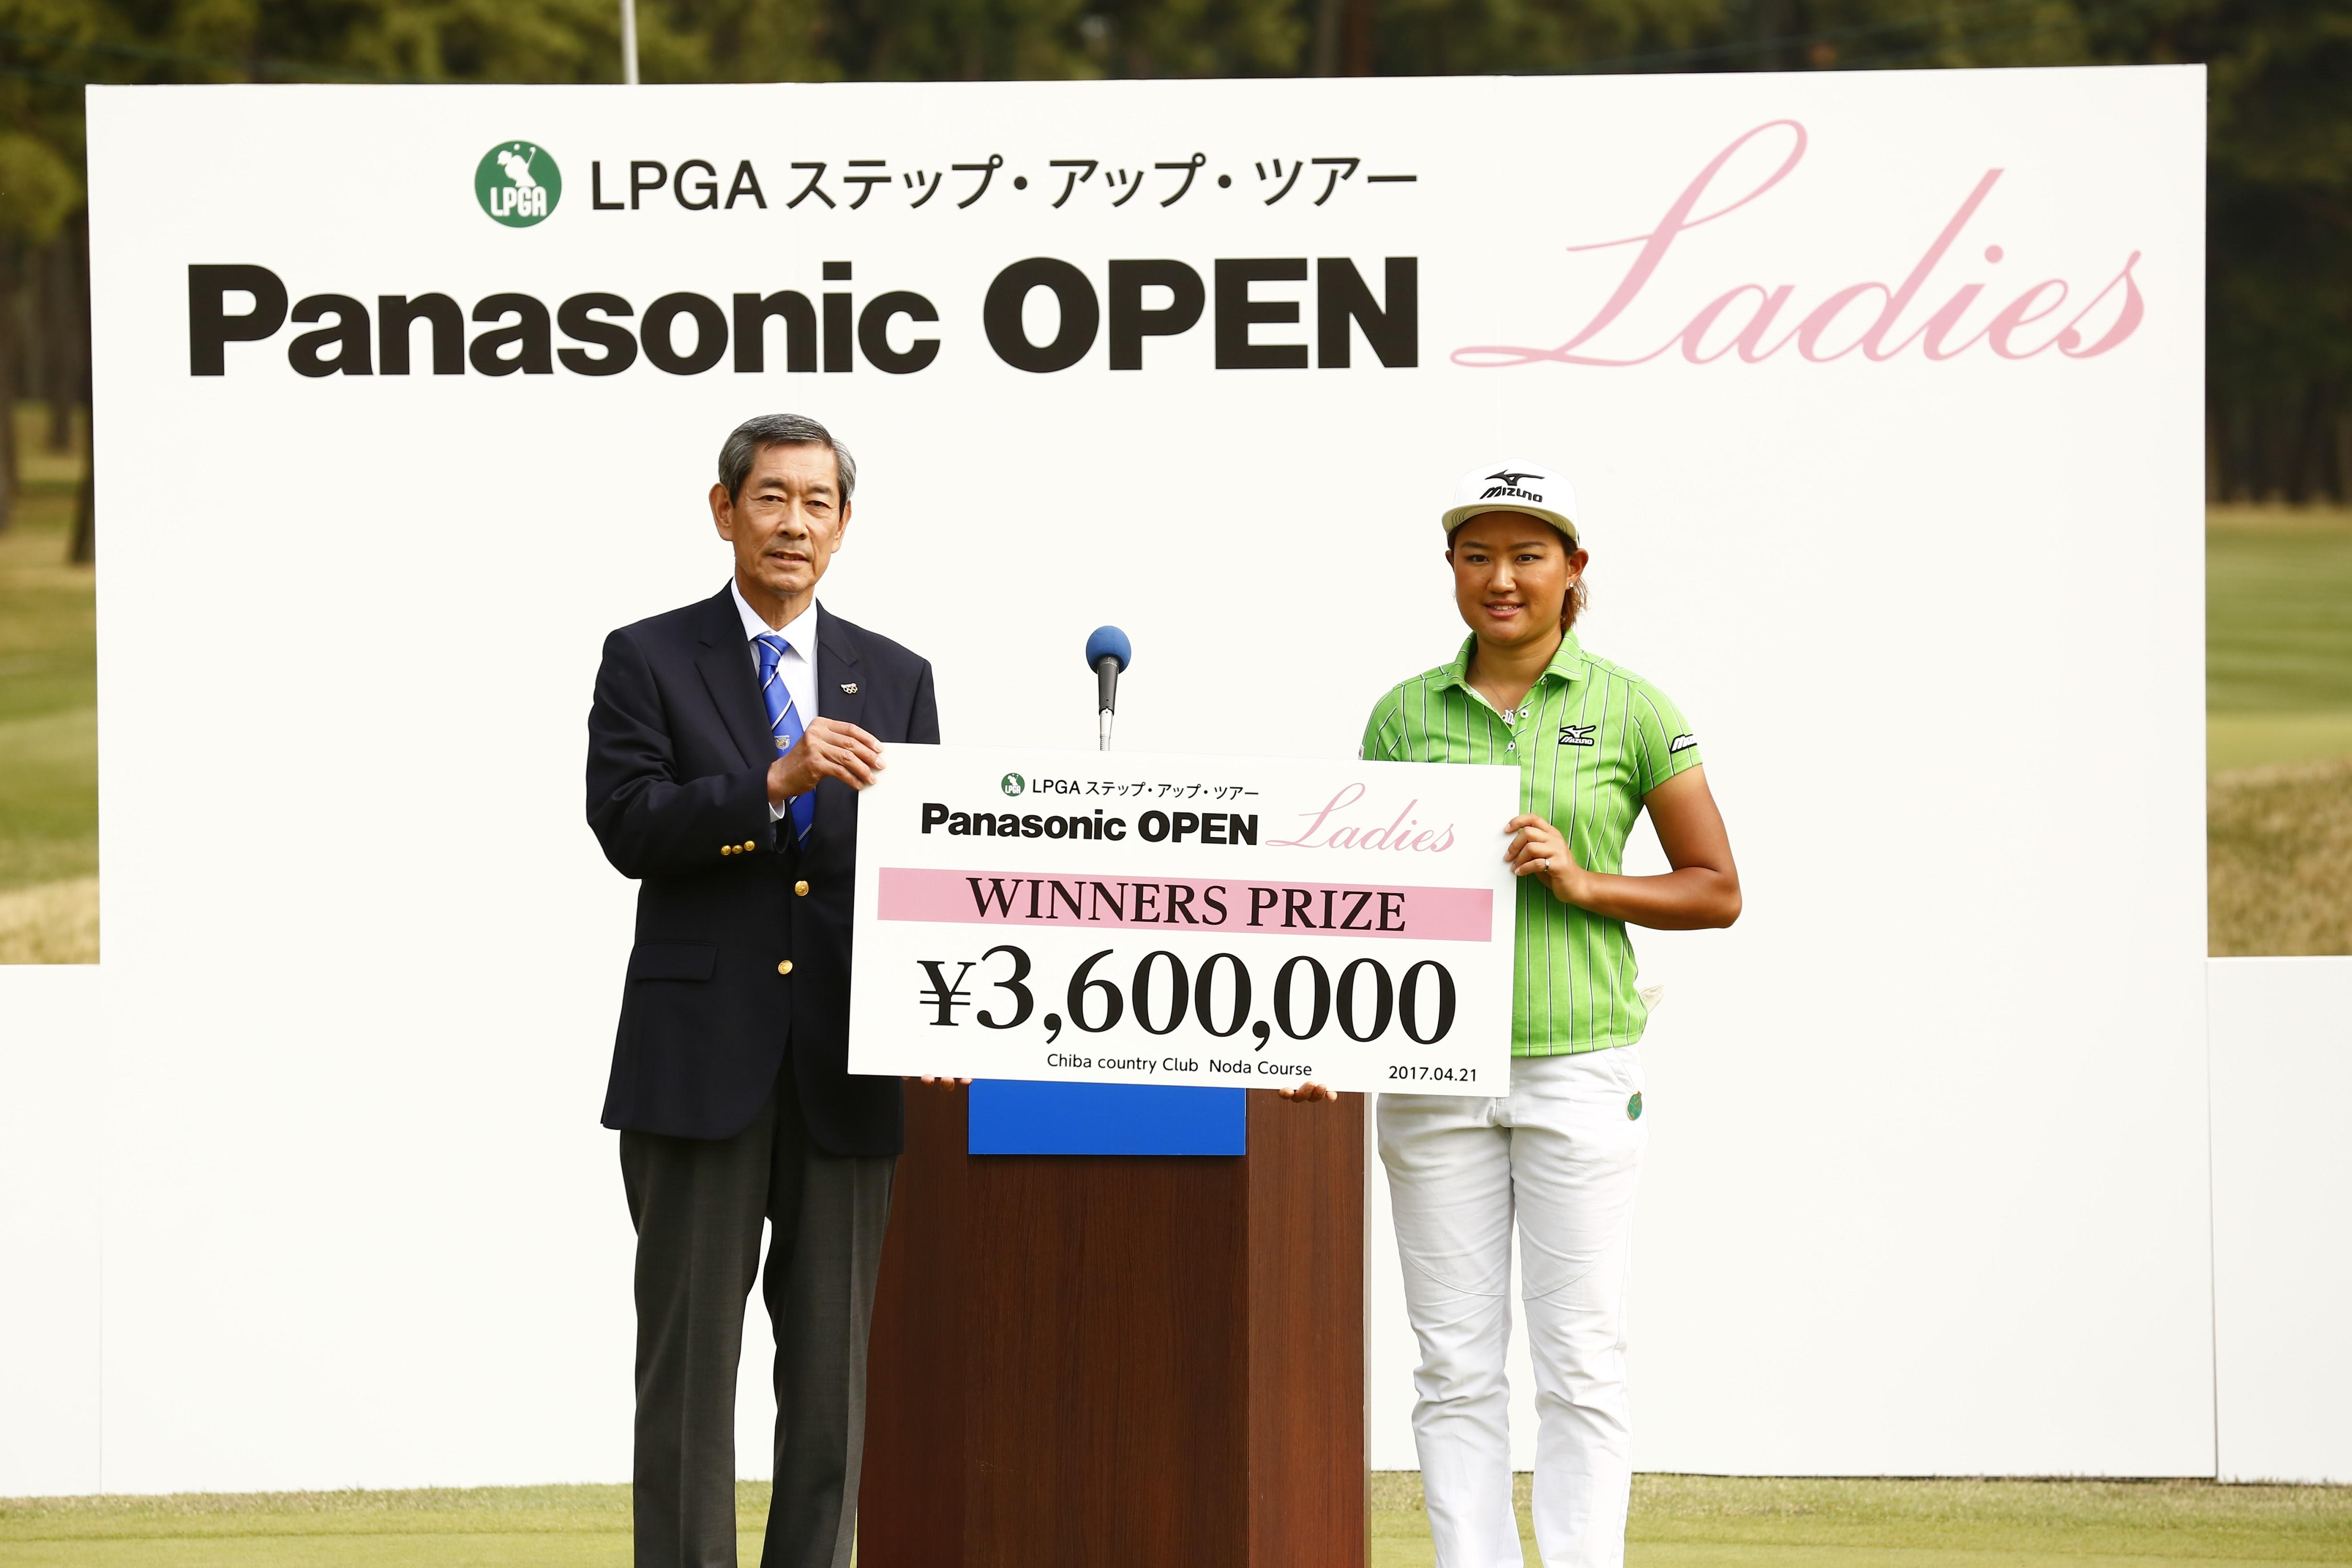 Panasonic OPEN Ladies 2017